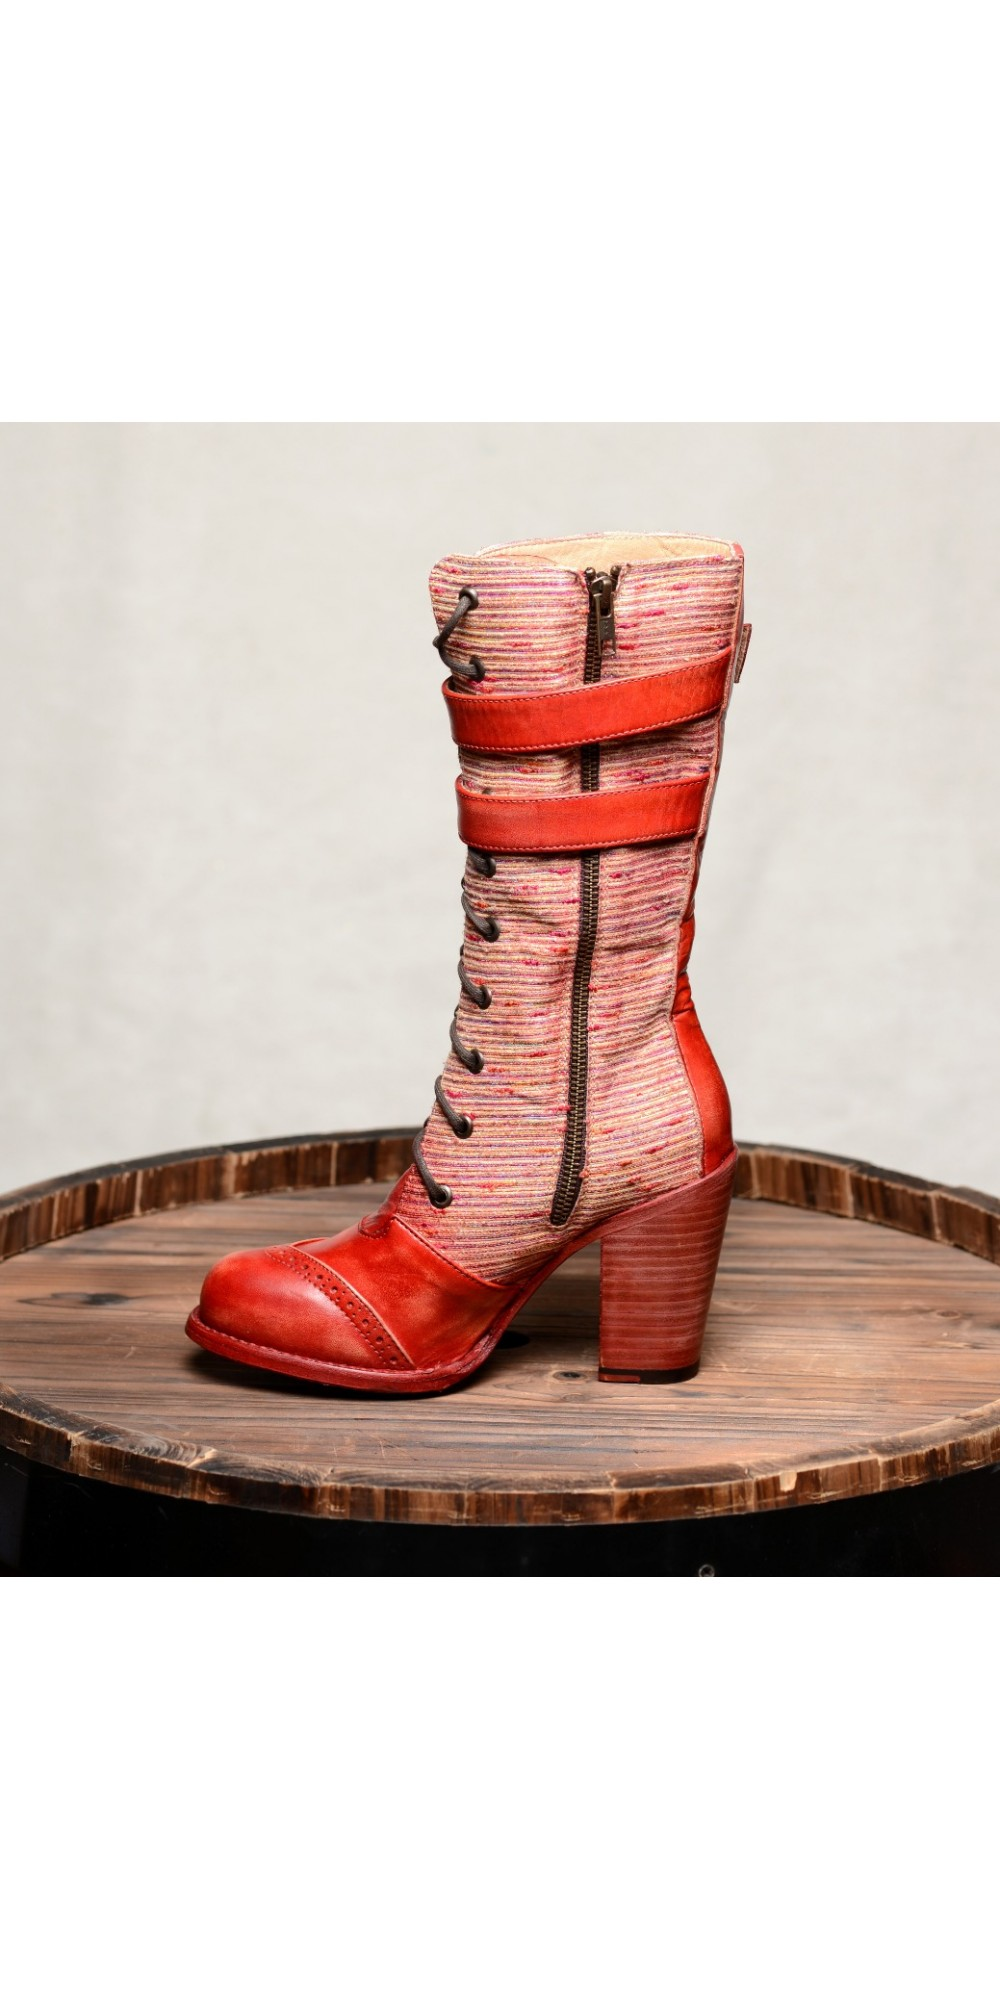 Arabella Steampunk Style Mid Calf Leather Red Boots By Oak